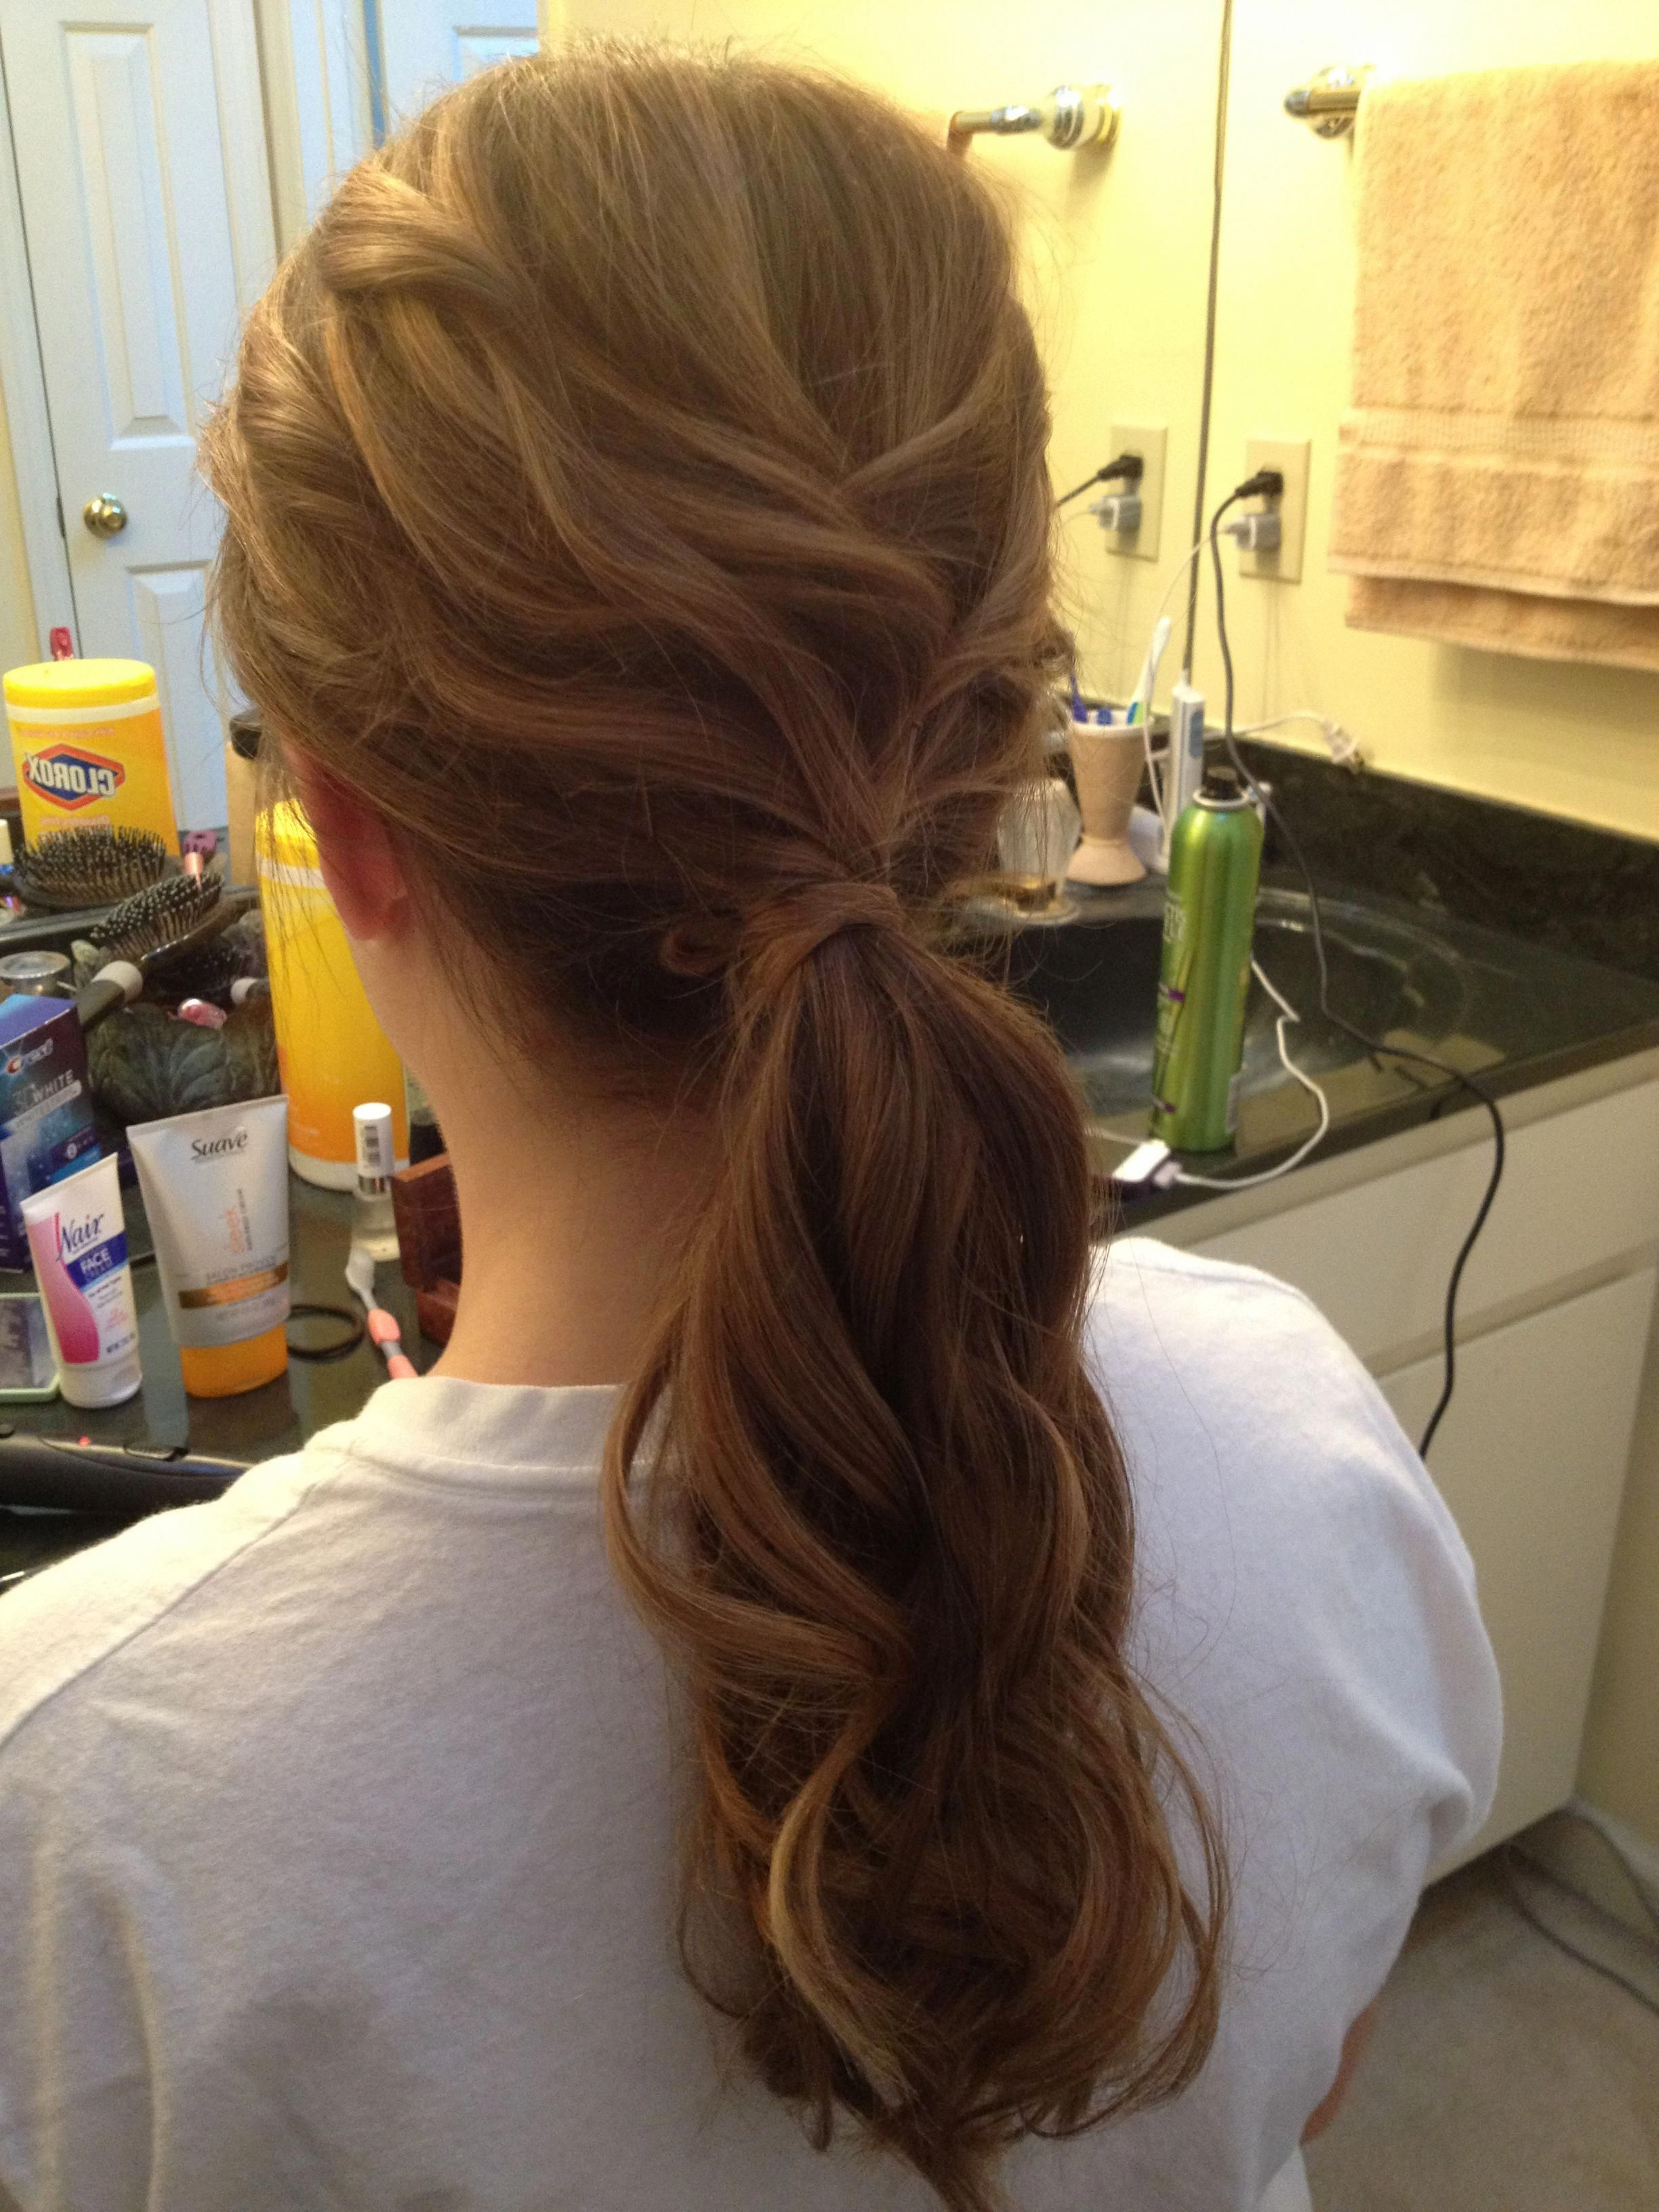 curly low ponytail, formal hairstyle #ponytailpromhairstyles